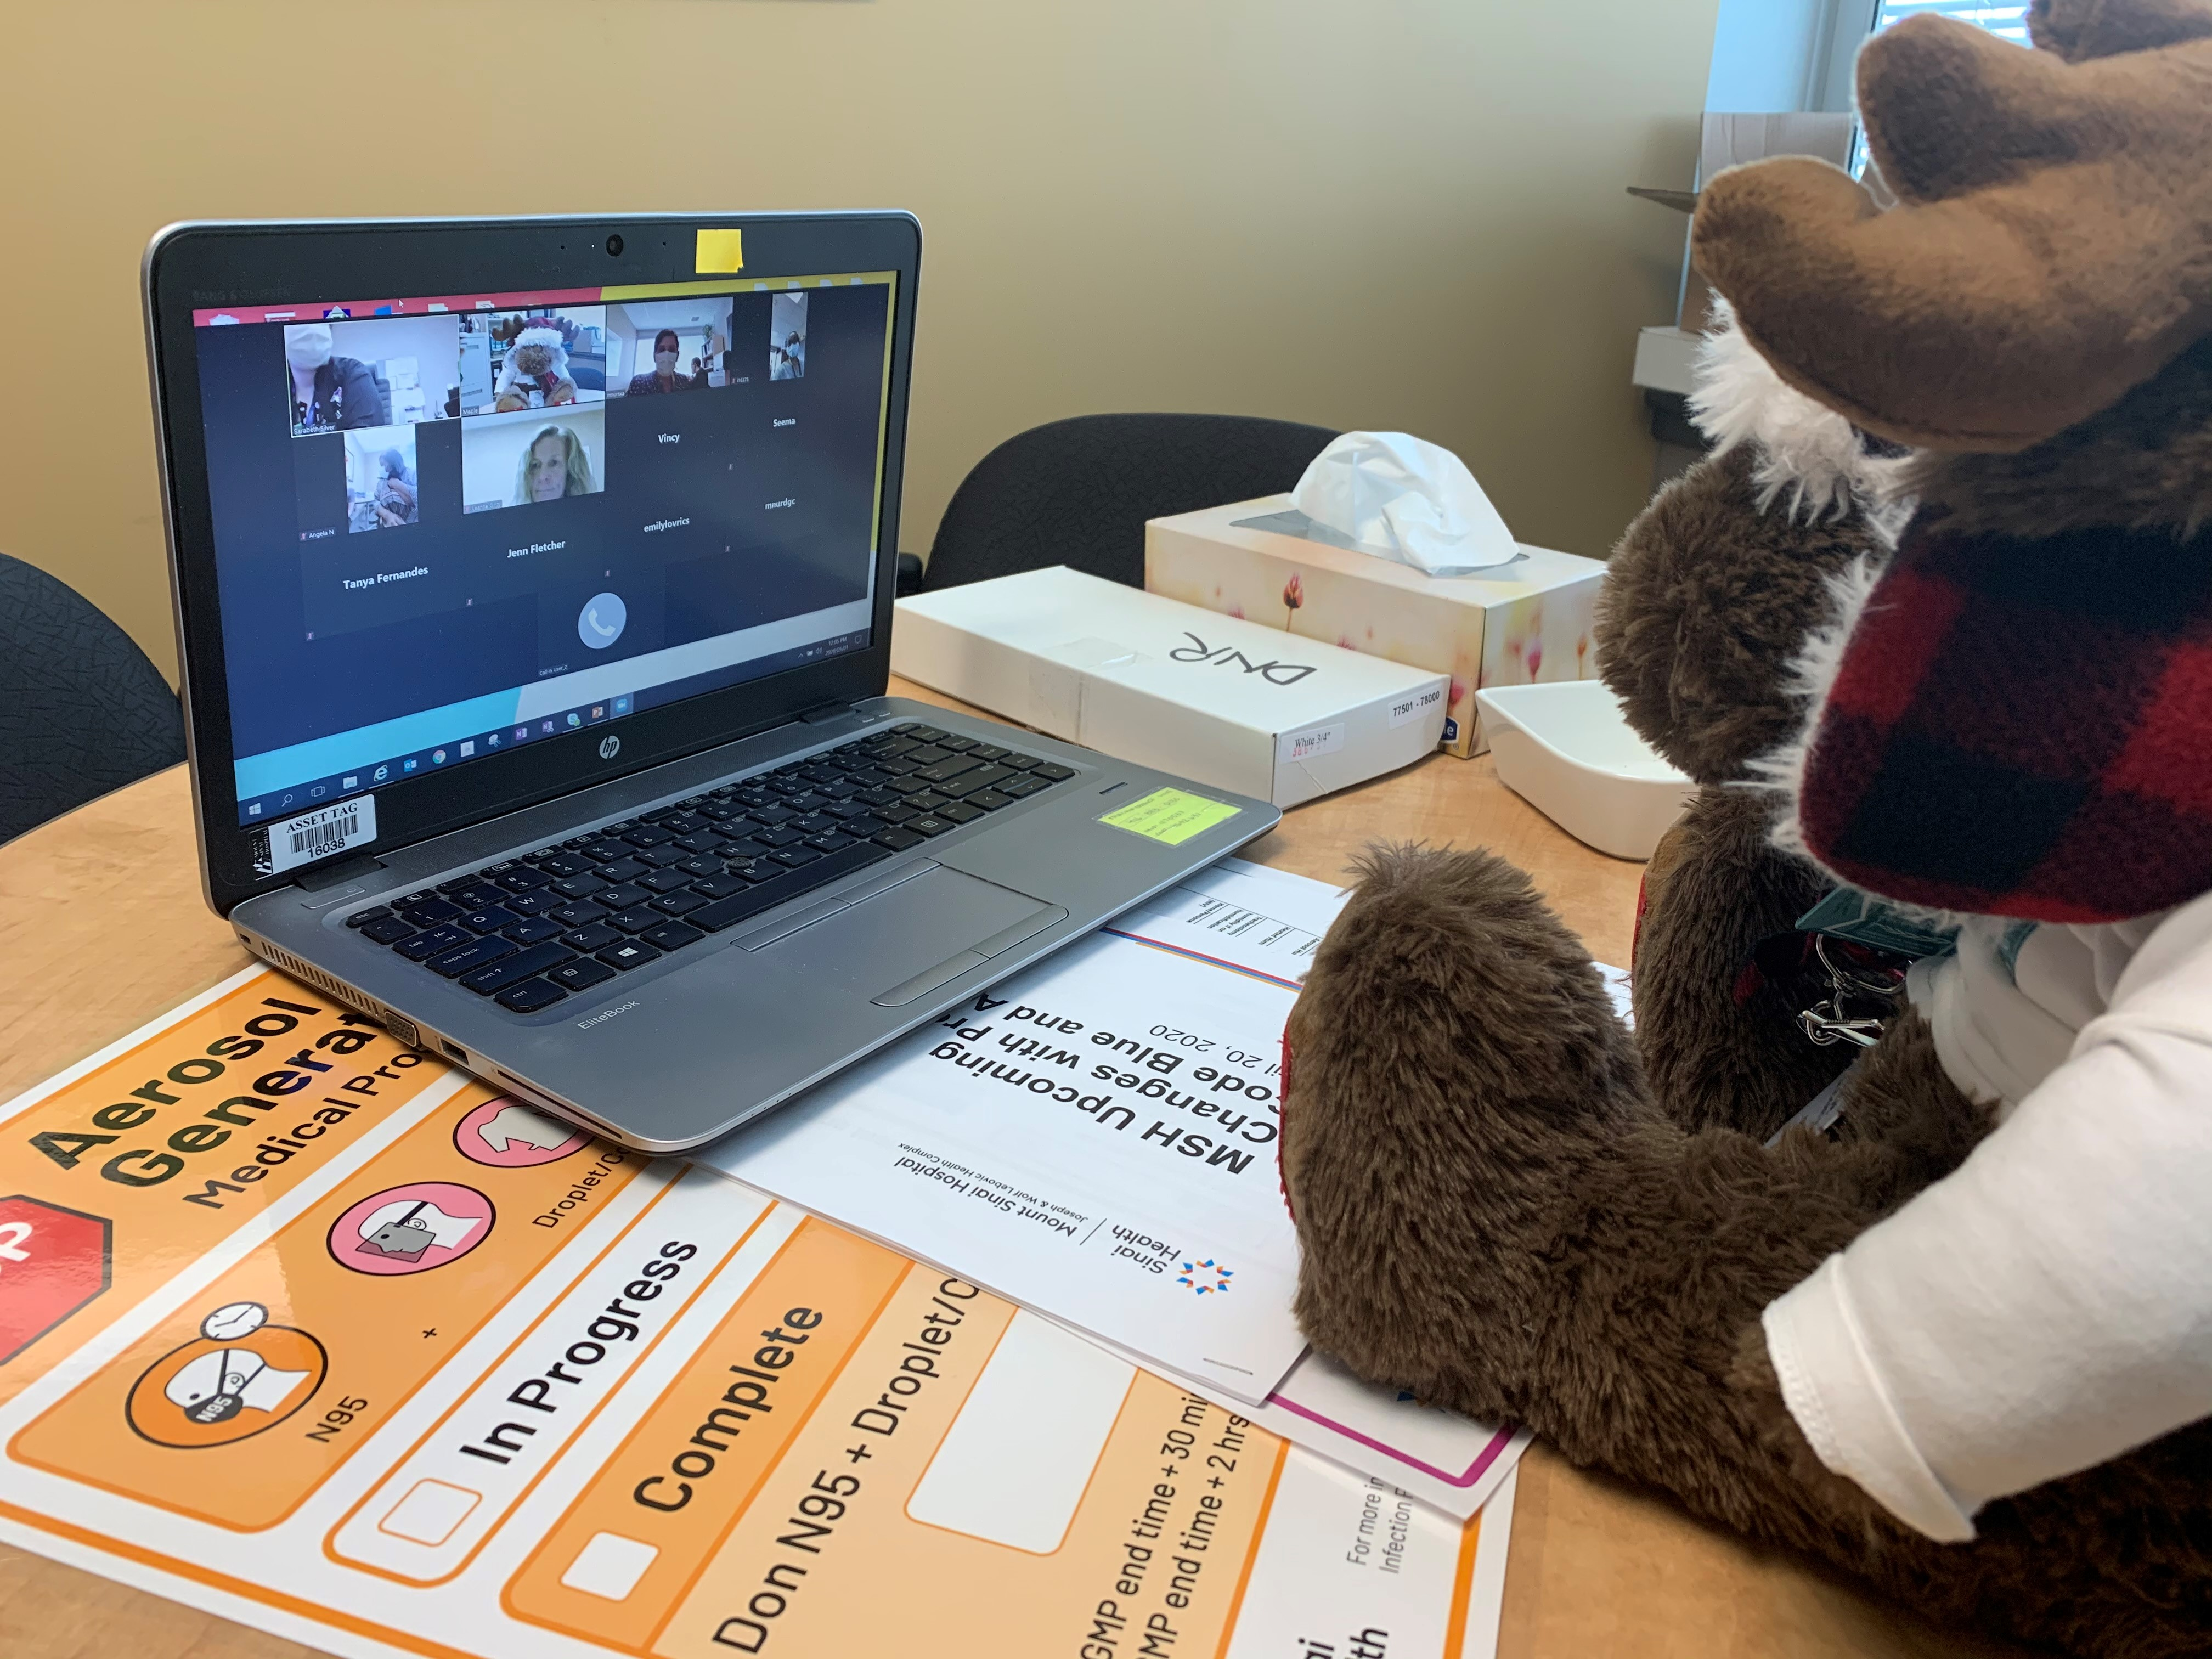 A stuffed animal moose, sitting on a table in front of a laptop as if he is participating in a video conference call.